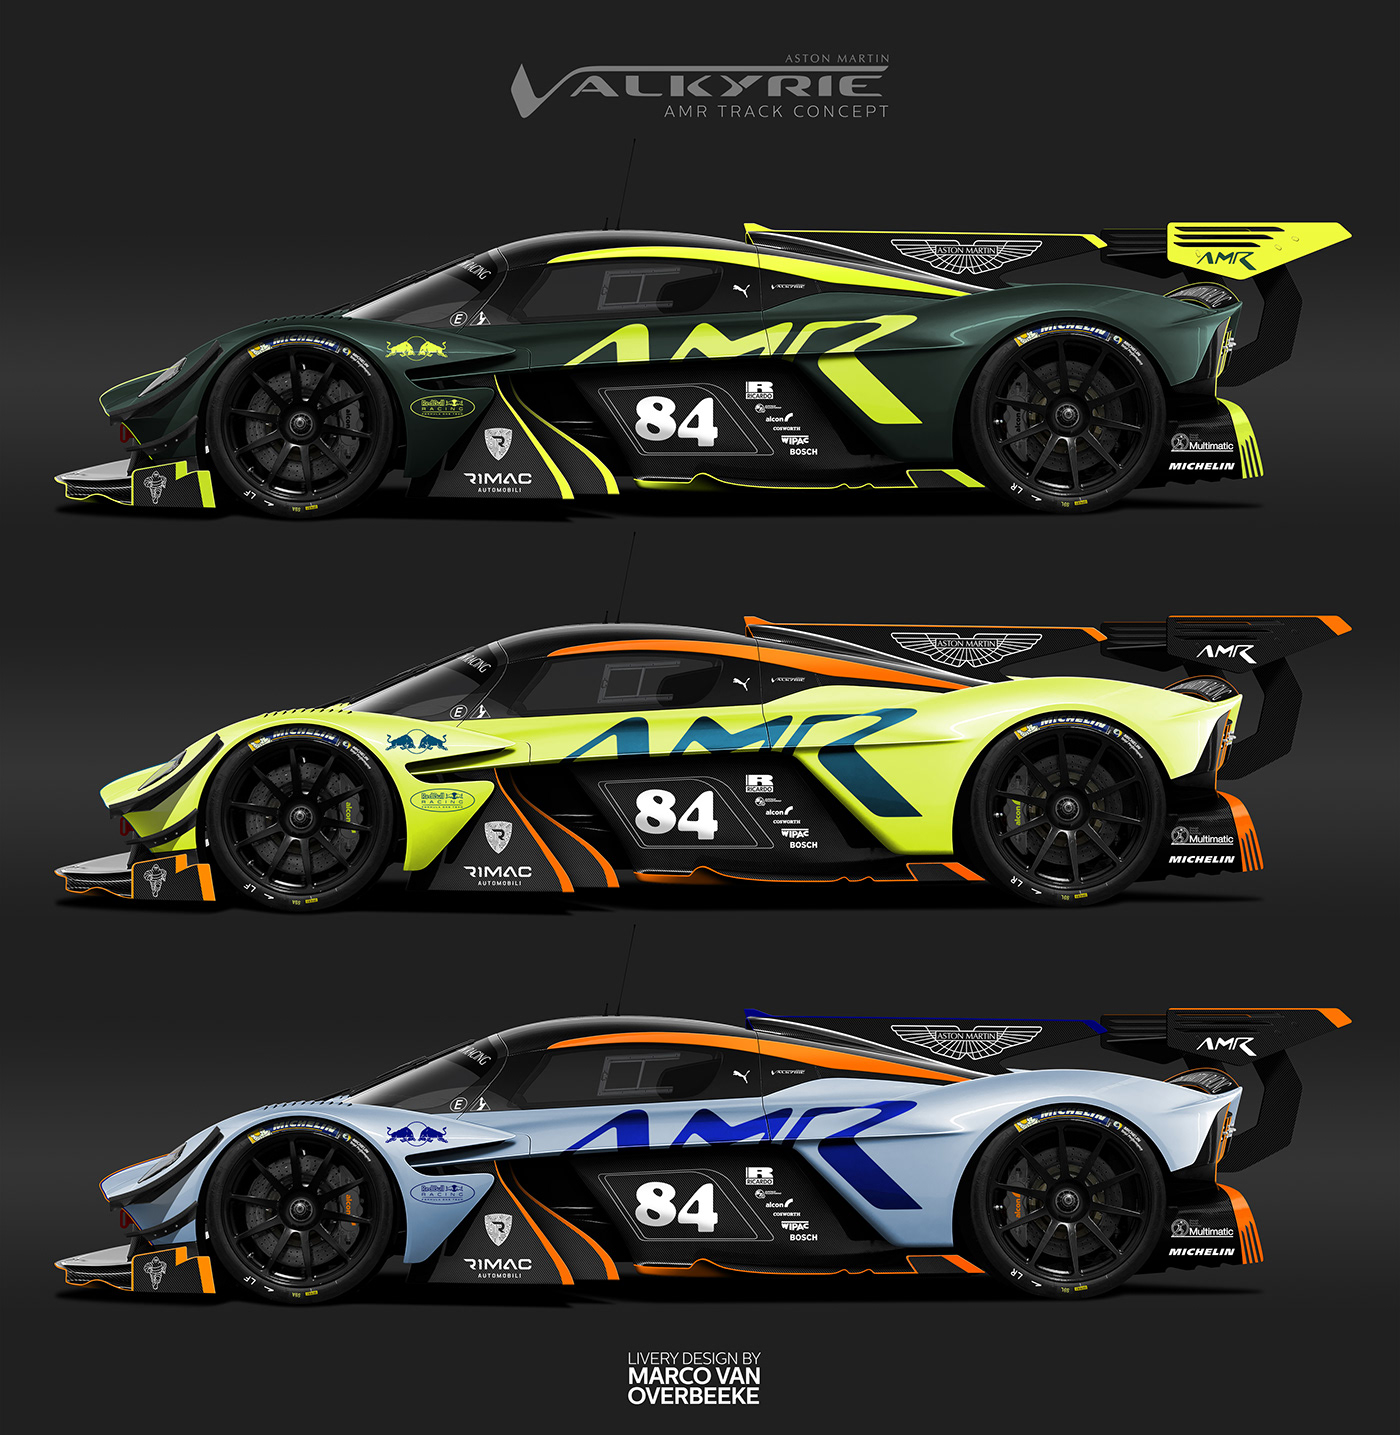 Aston Martin Valkyrie Sport: Aston Martin Valkyrie AMR Pro Livery Concepts On Behance